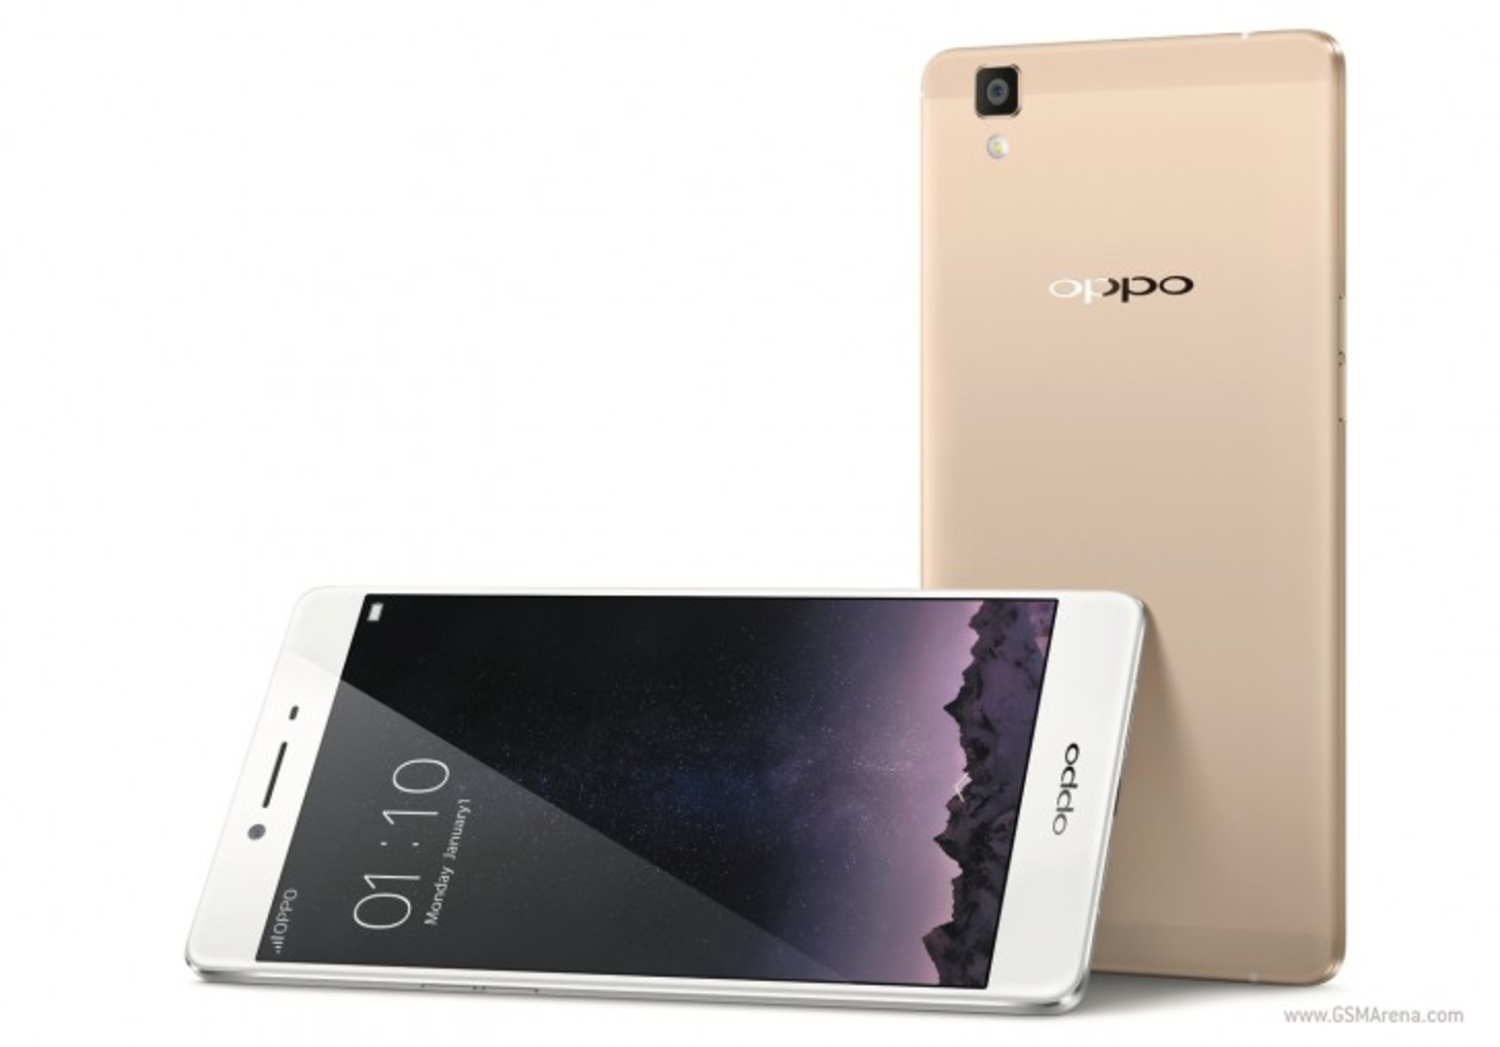 Oppo Keeps Making Them Chic